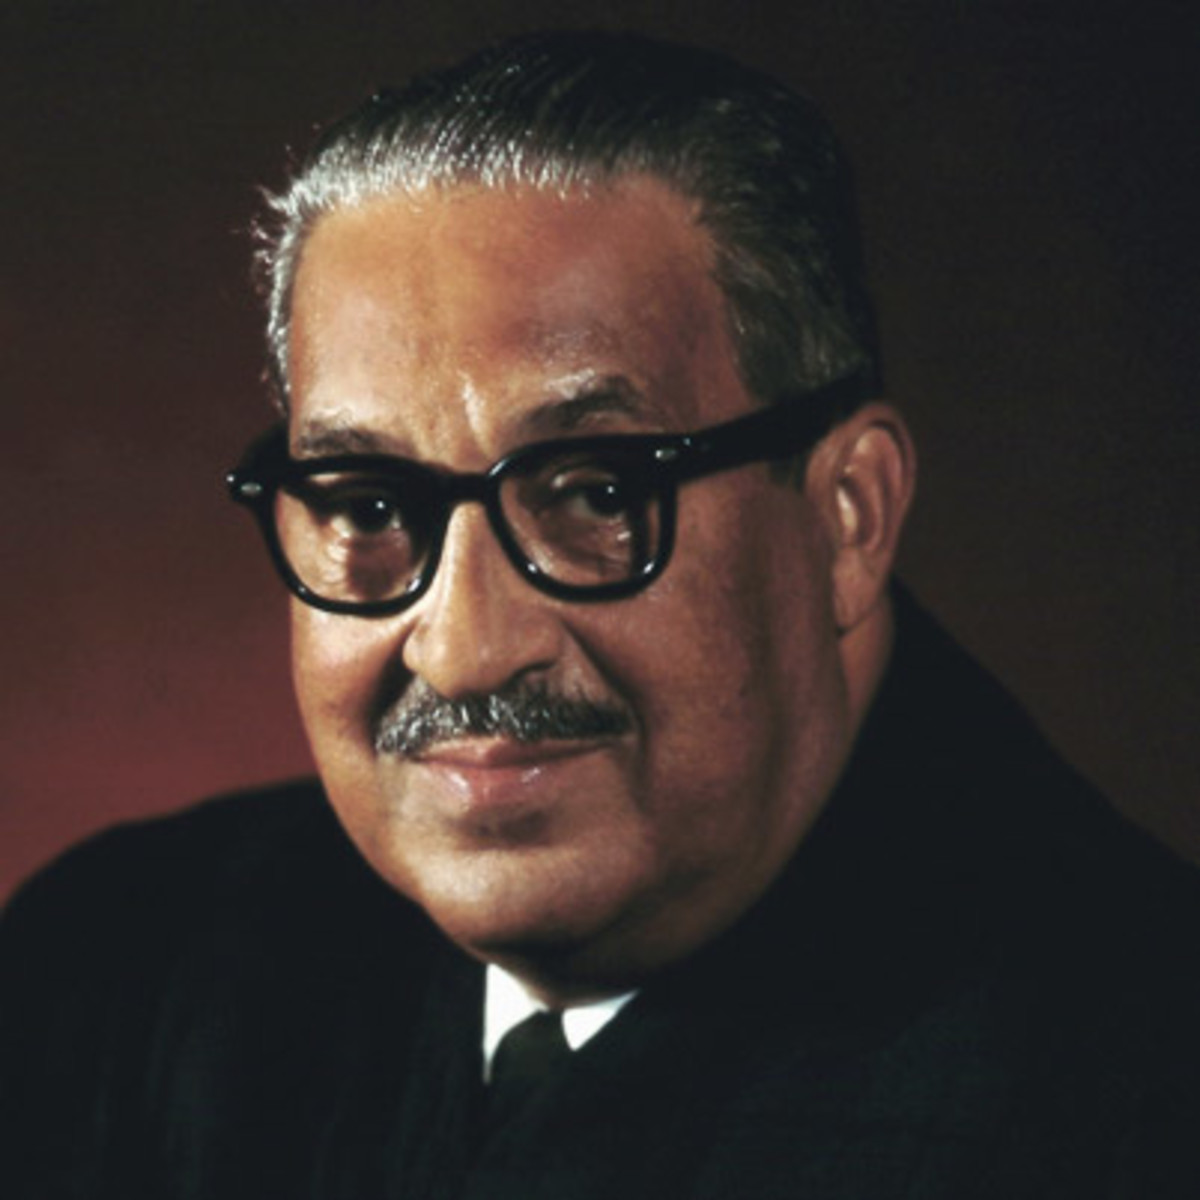 a biography of thurgood marshall an american associate justice of the supreme court Thurgood marshall (1908-1993) was an american civil rights lawyer, solicitor general, and associate justice of the us supreme court thurgood marshall was born on.